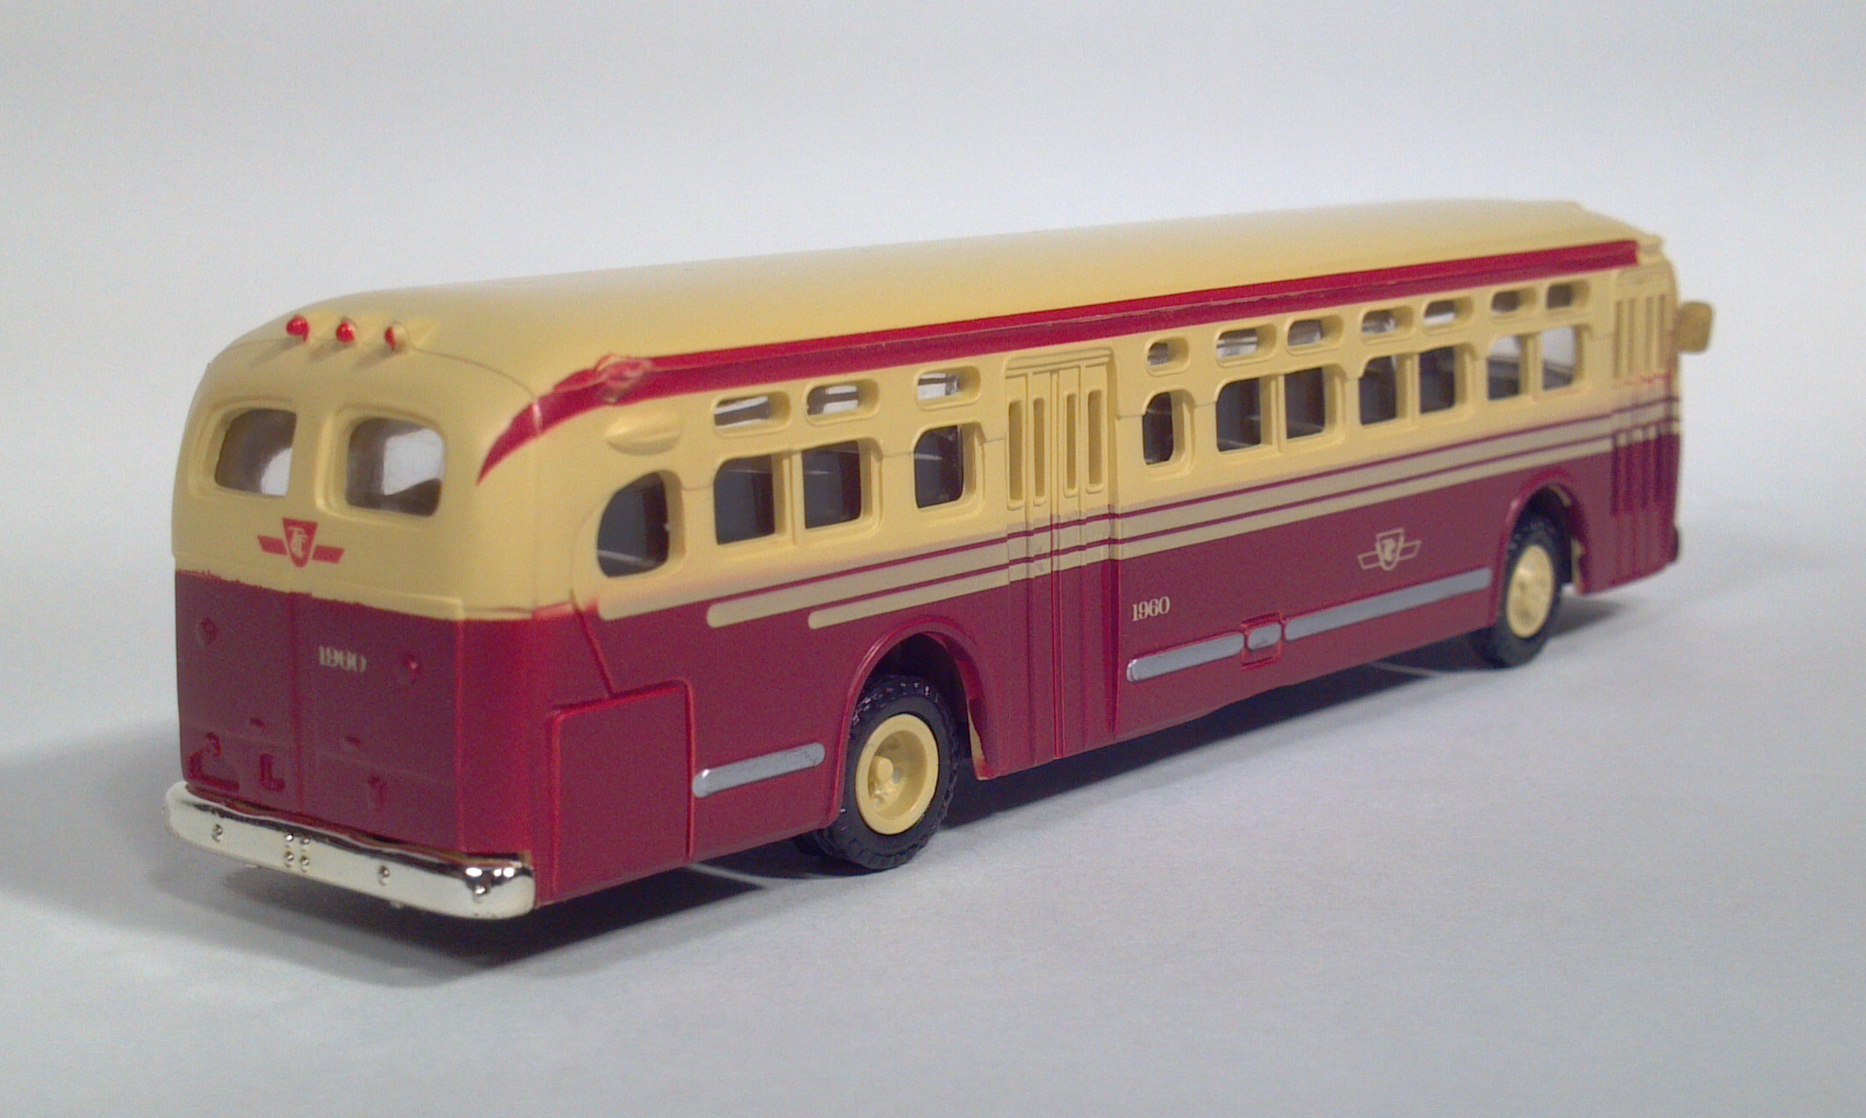 1950 Gm Bus Image Collections Diagram Writing Sample Ideas And Guide